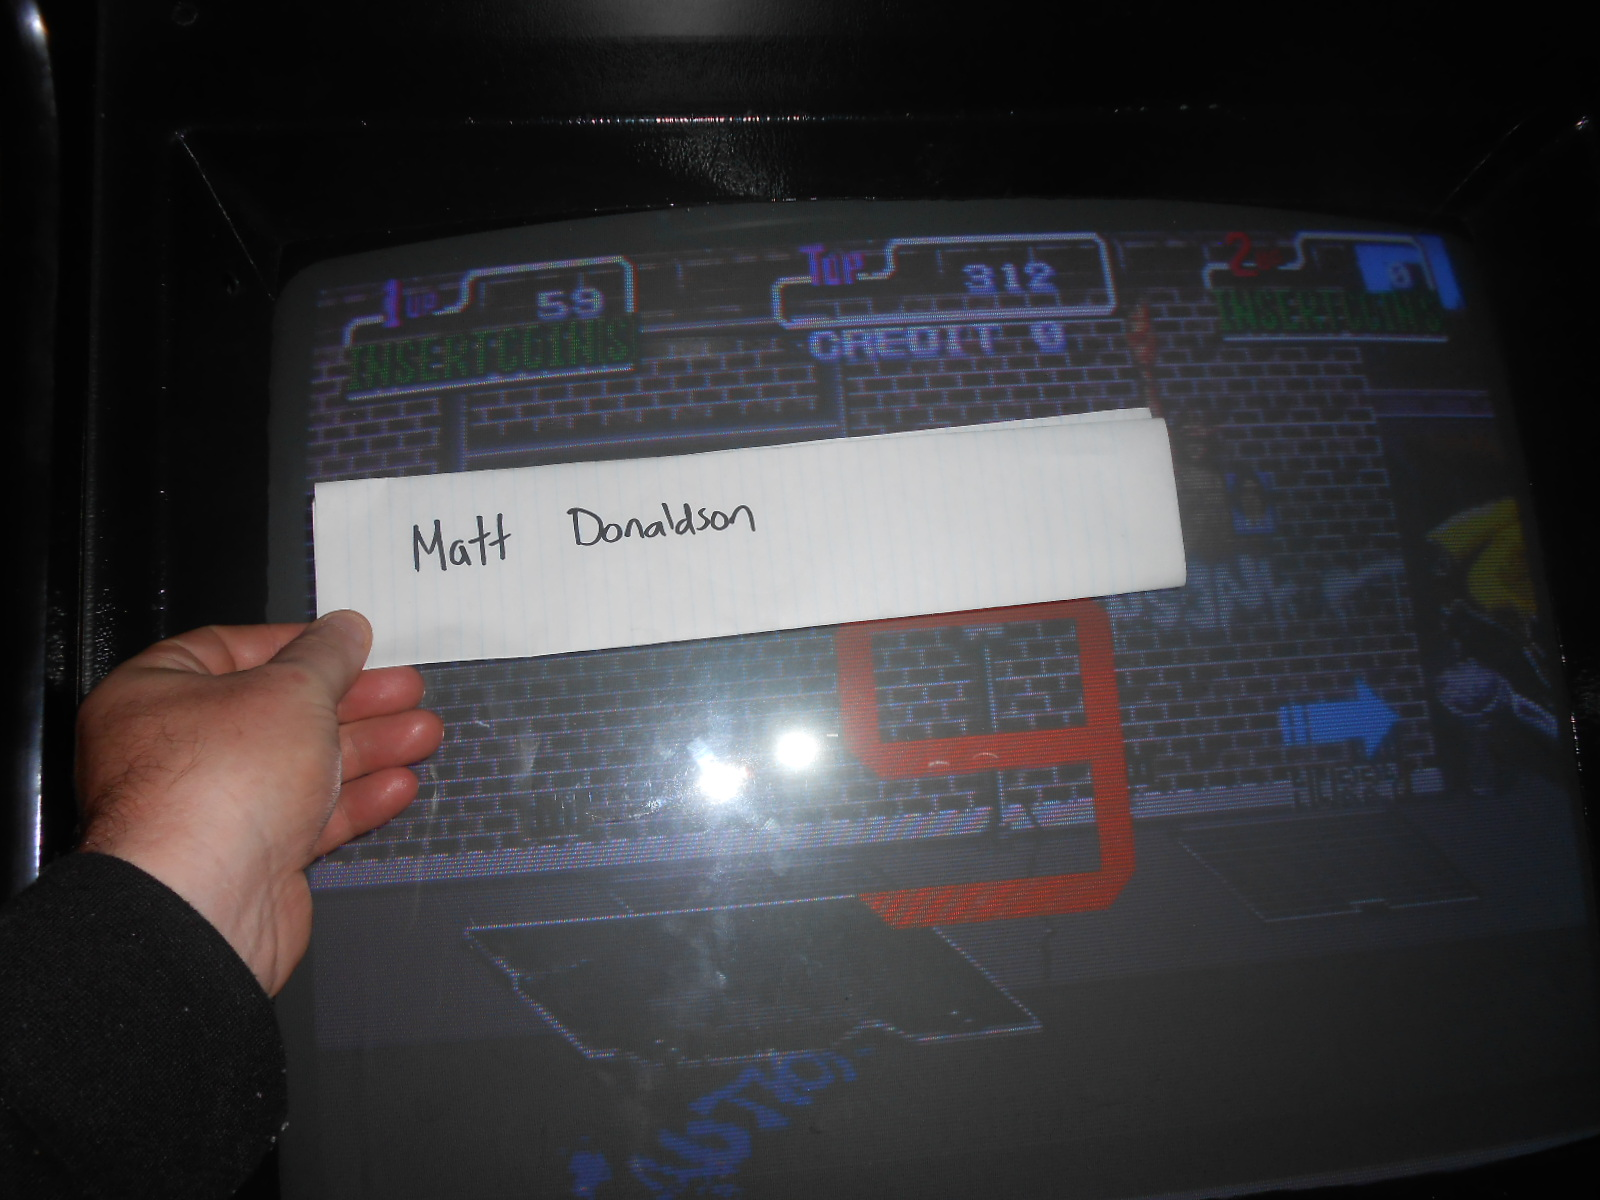 MattDonaldson: Teenage Mutant Ninja Turtles [tmnt] (Arcade Emulated / M.A.M.E.) 59 points on 2015-04-05 23:58:24